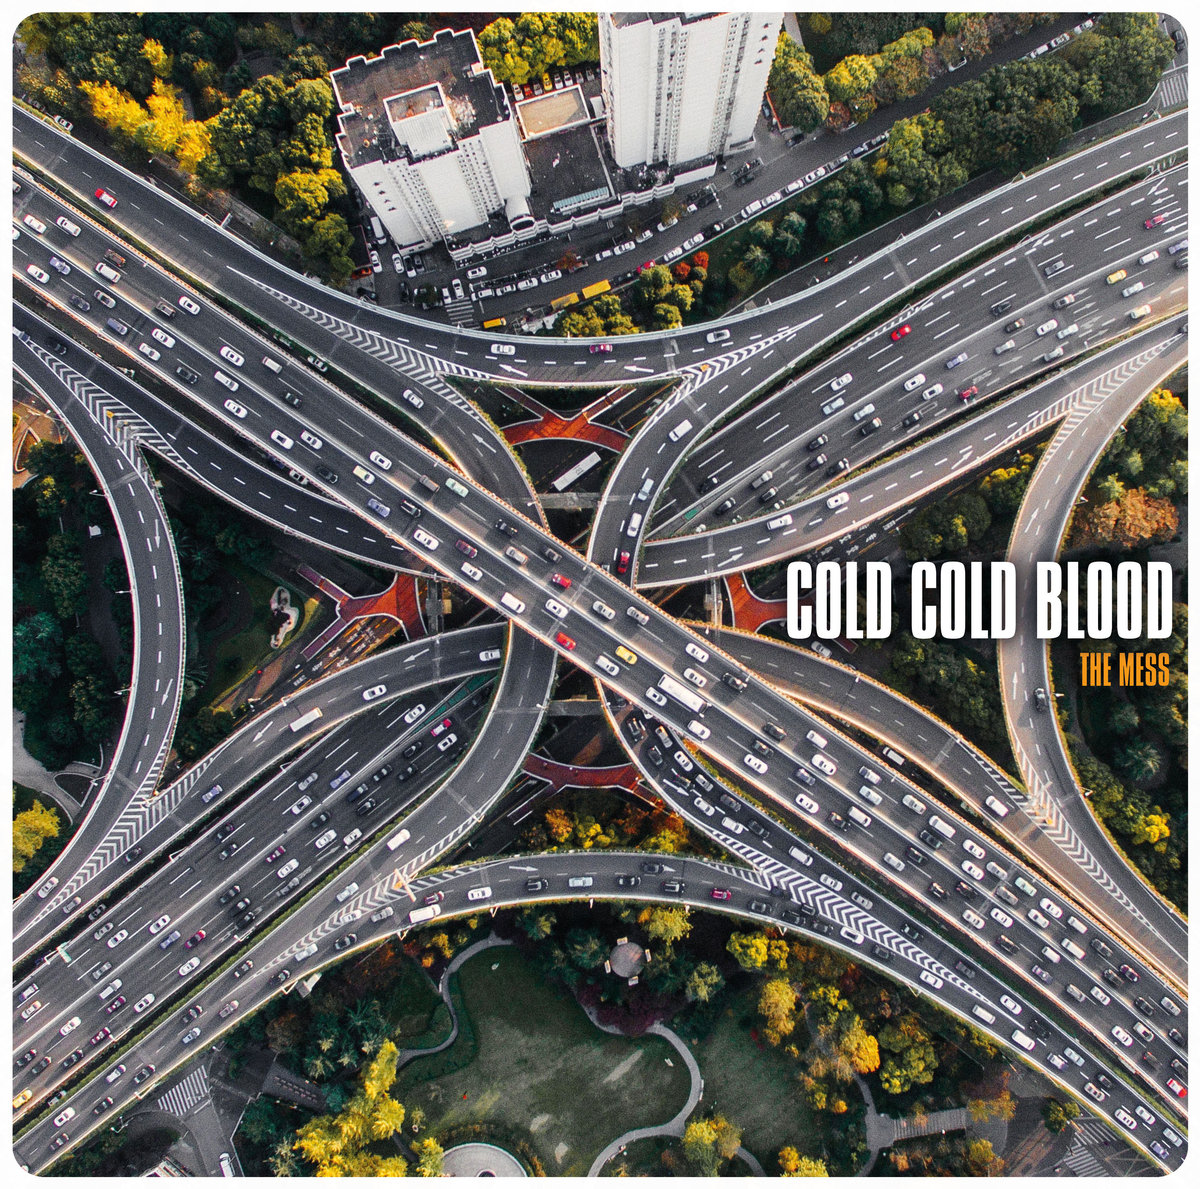 i love limoges records the mess cold cold blood rock 'n' roll punk critique review chronique patrick foulhoux 2019